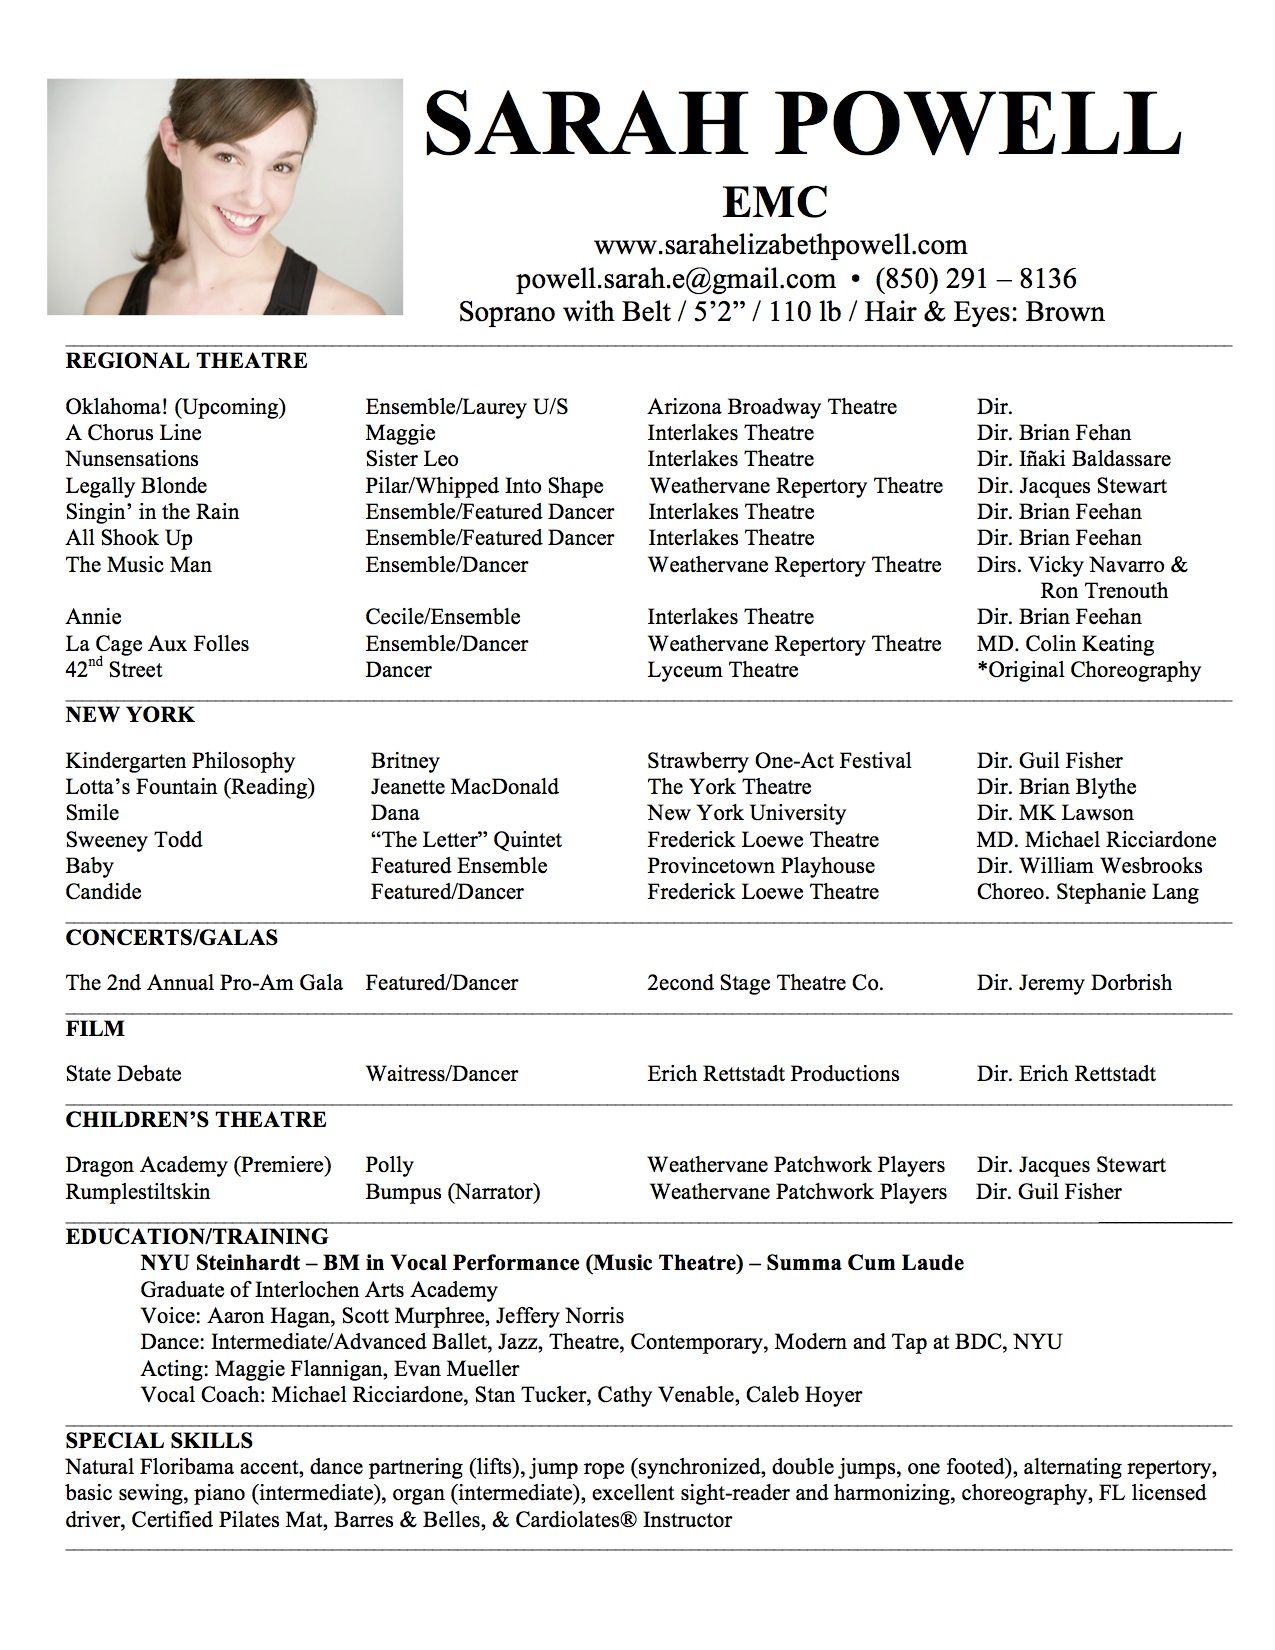 Superior Headshot Resume Sarah Elizabeth Powell Sample Theater Musical Technical Theatre  Template  Musical Theatre Resume Template